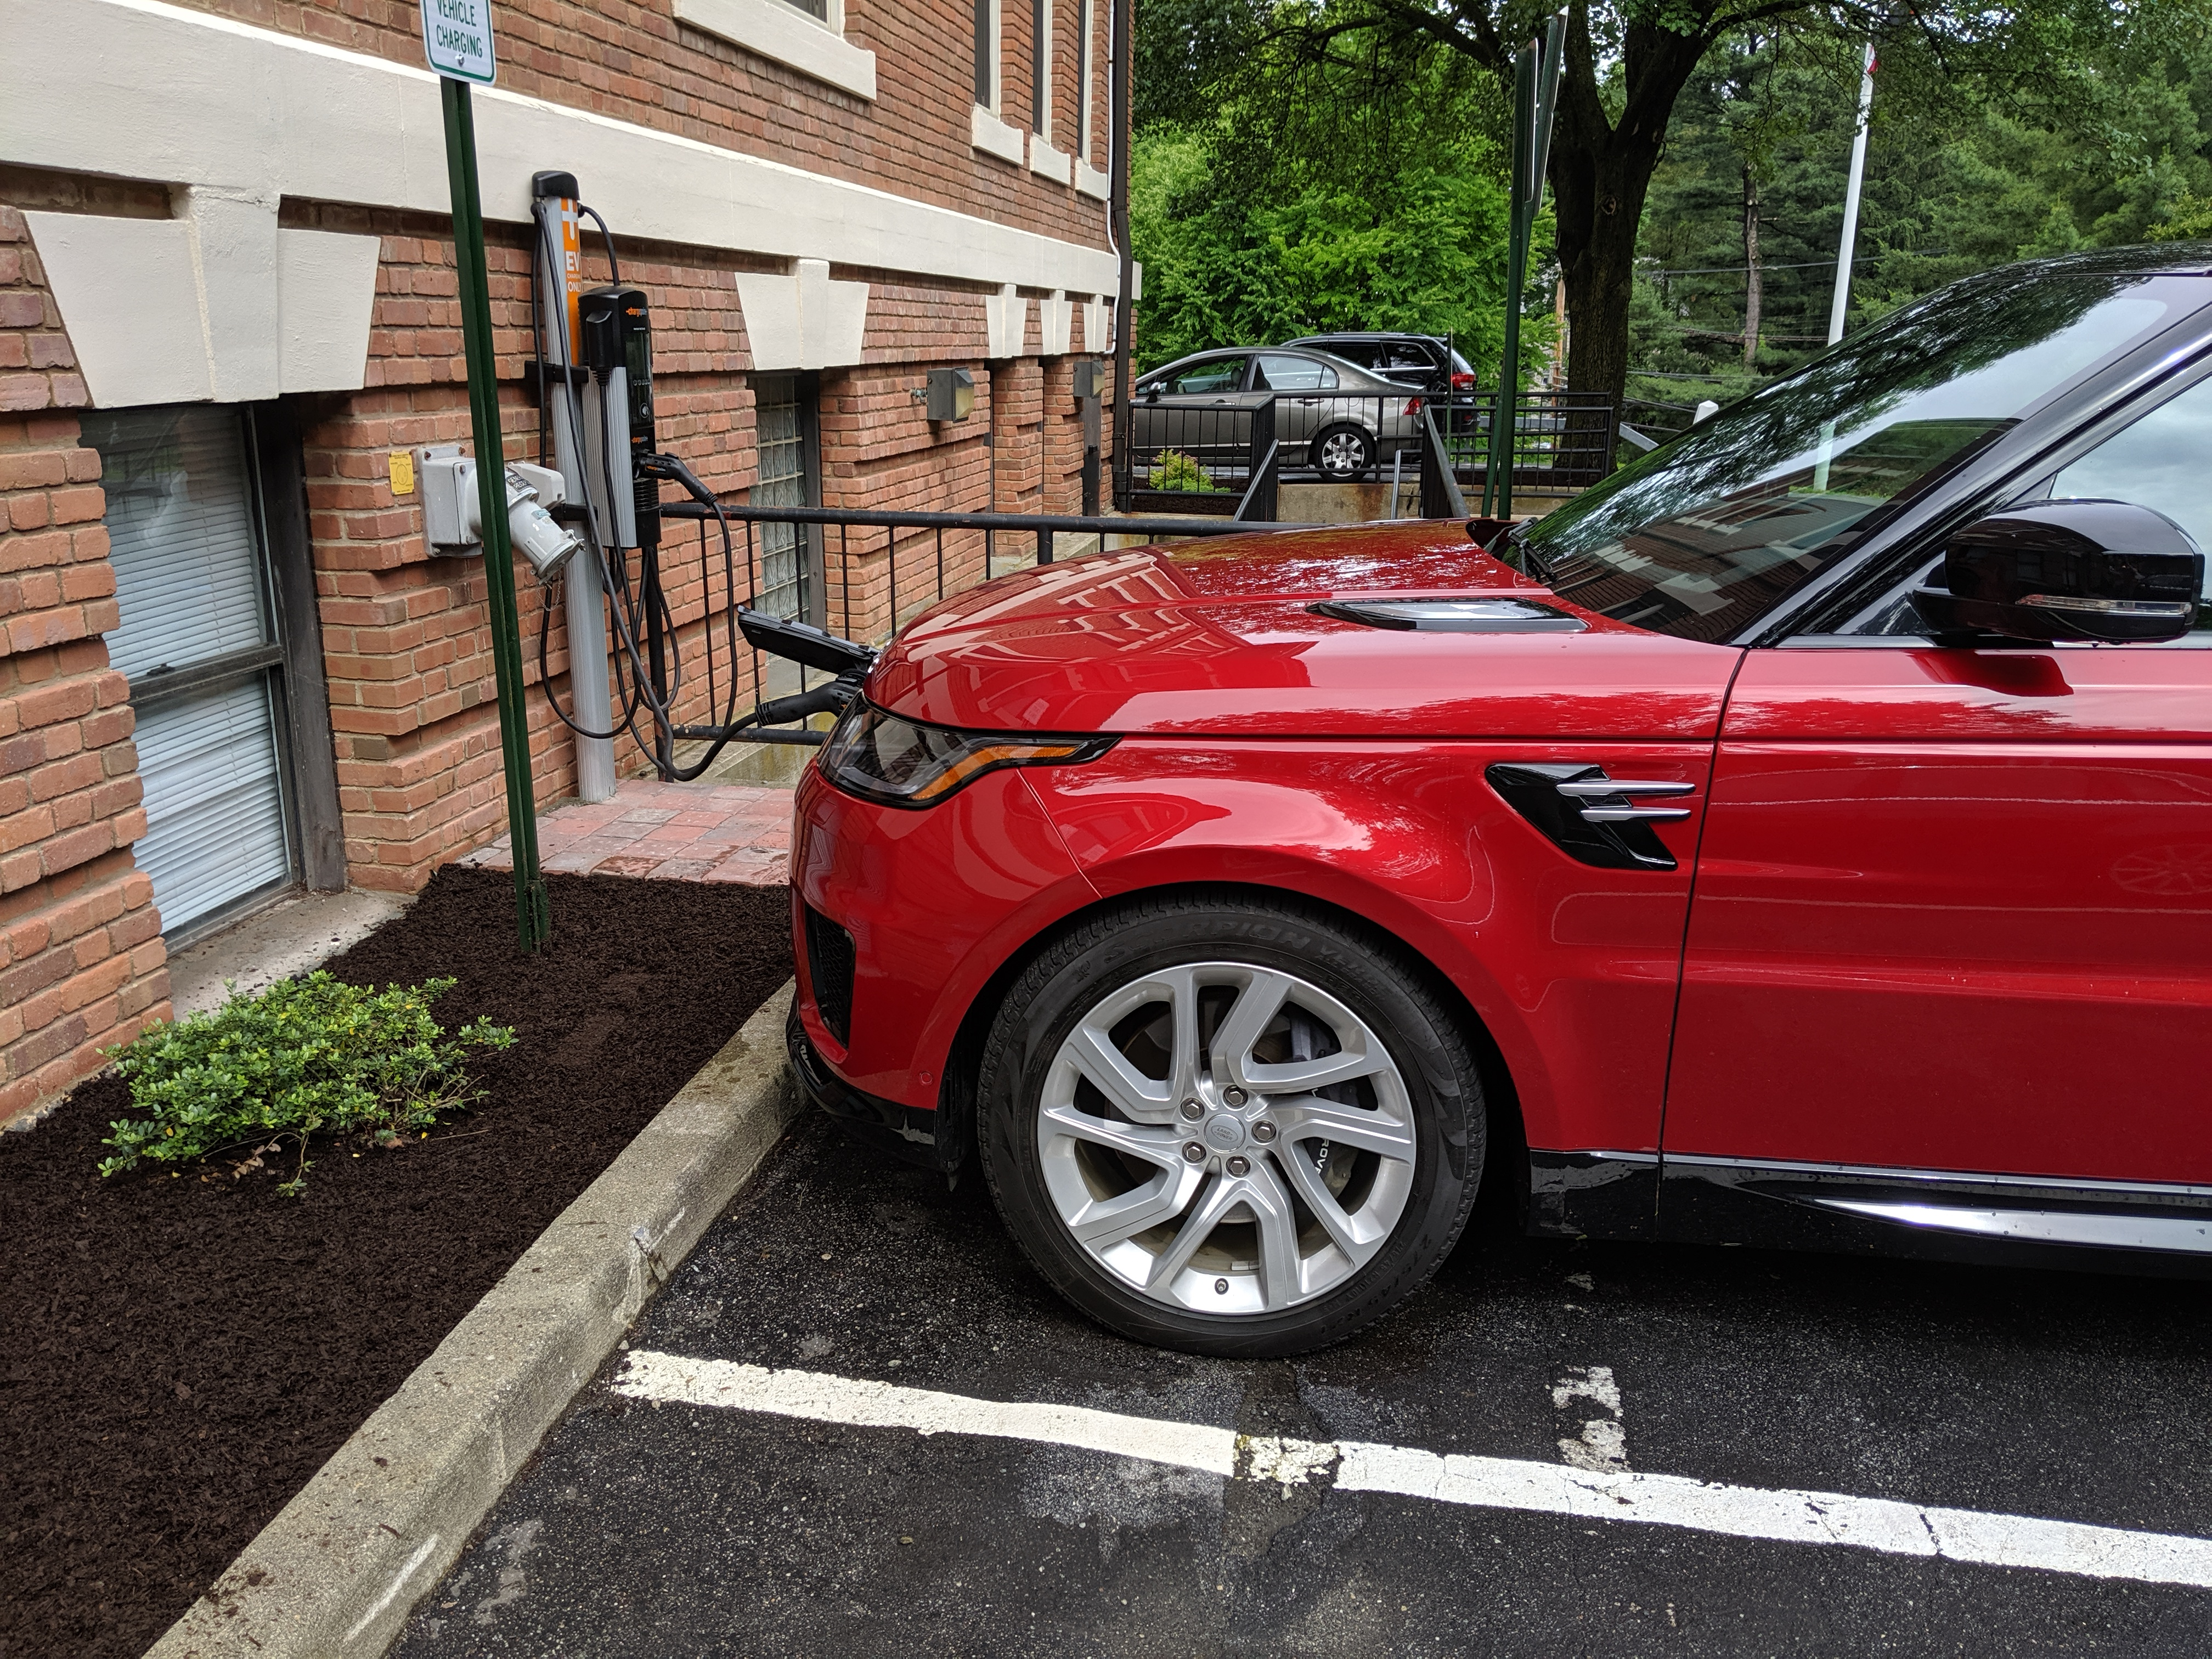 Review: Range Rover Sport PHEV is fun but lacks electric